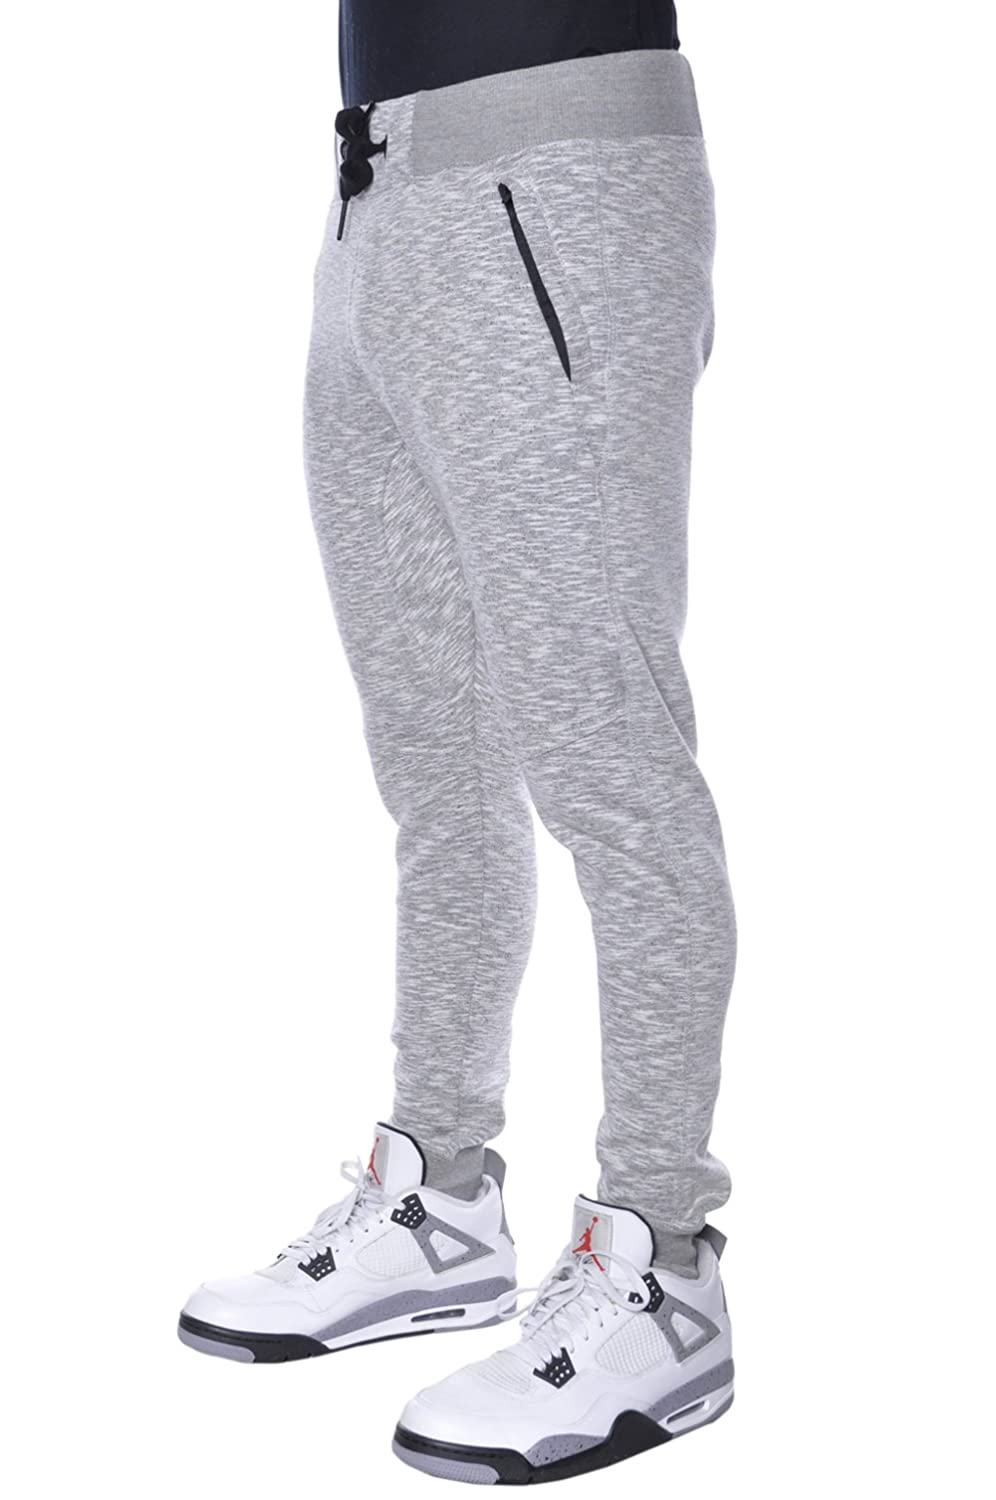 Popular Jogger Pants With Jordans Women Men Women 39 S Joggers Pants